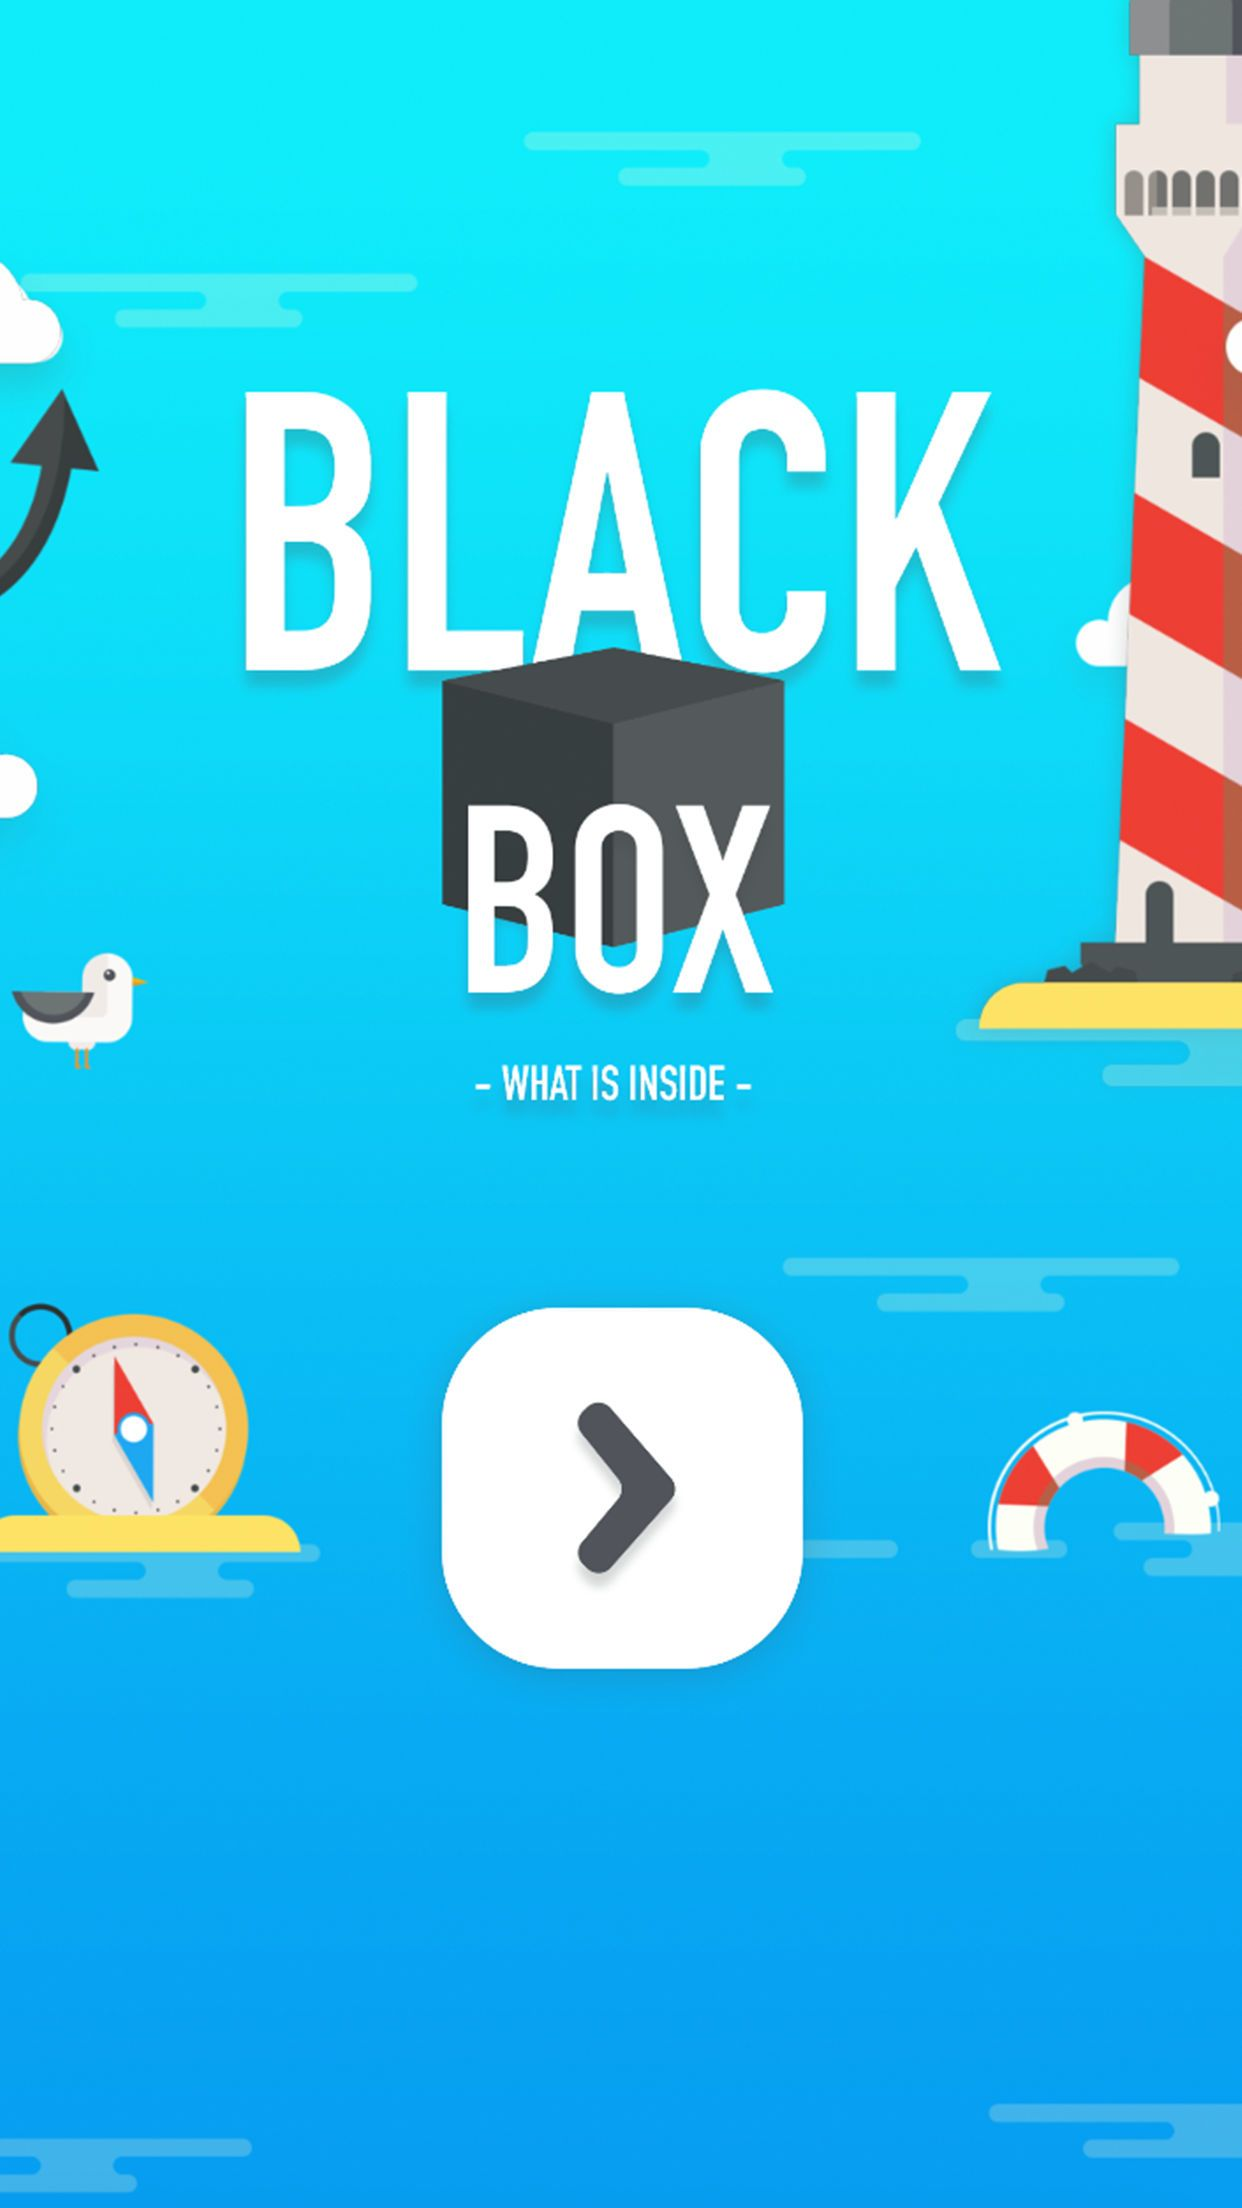 Black Box - Unity game for iOS Screenshot 1